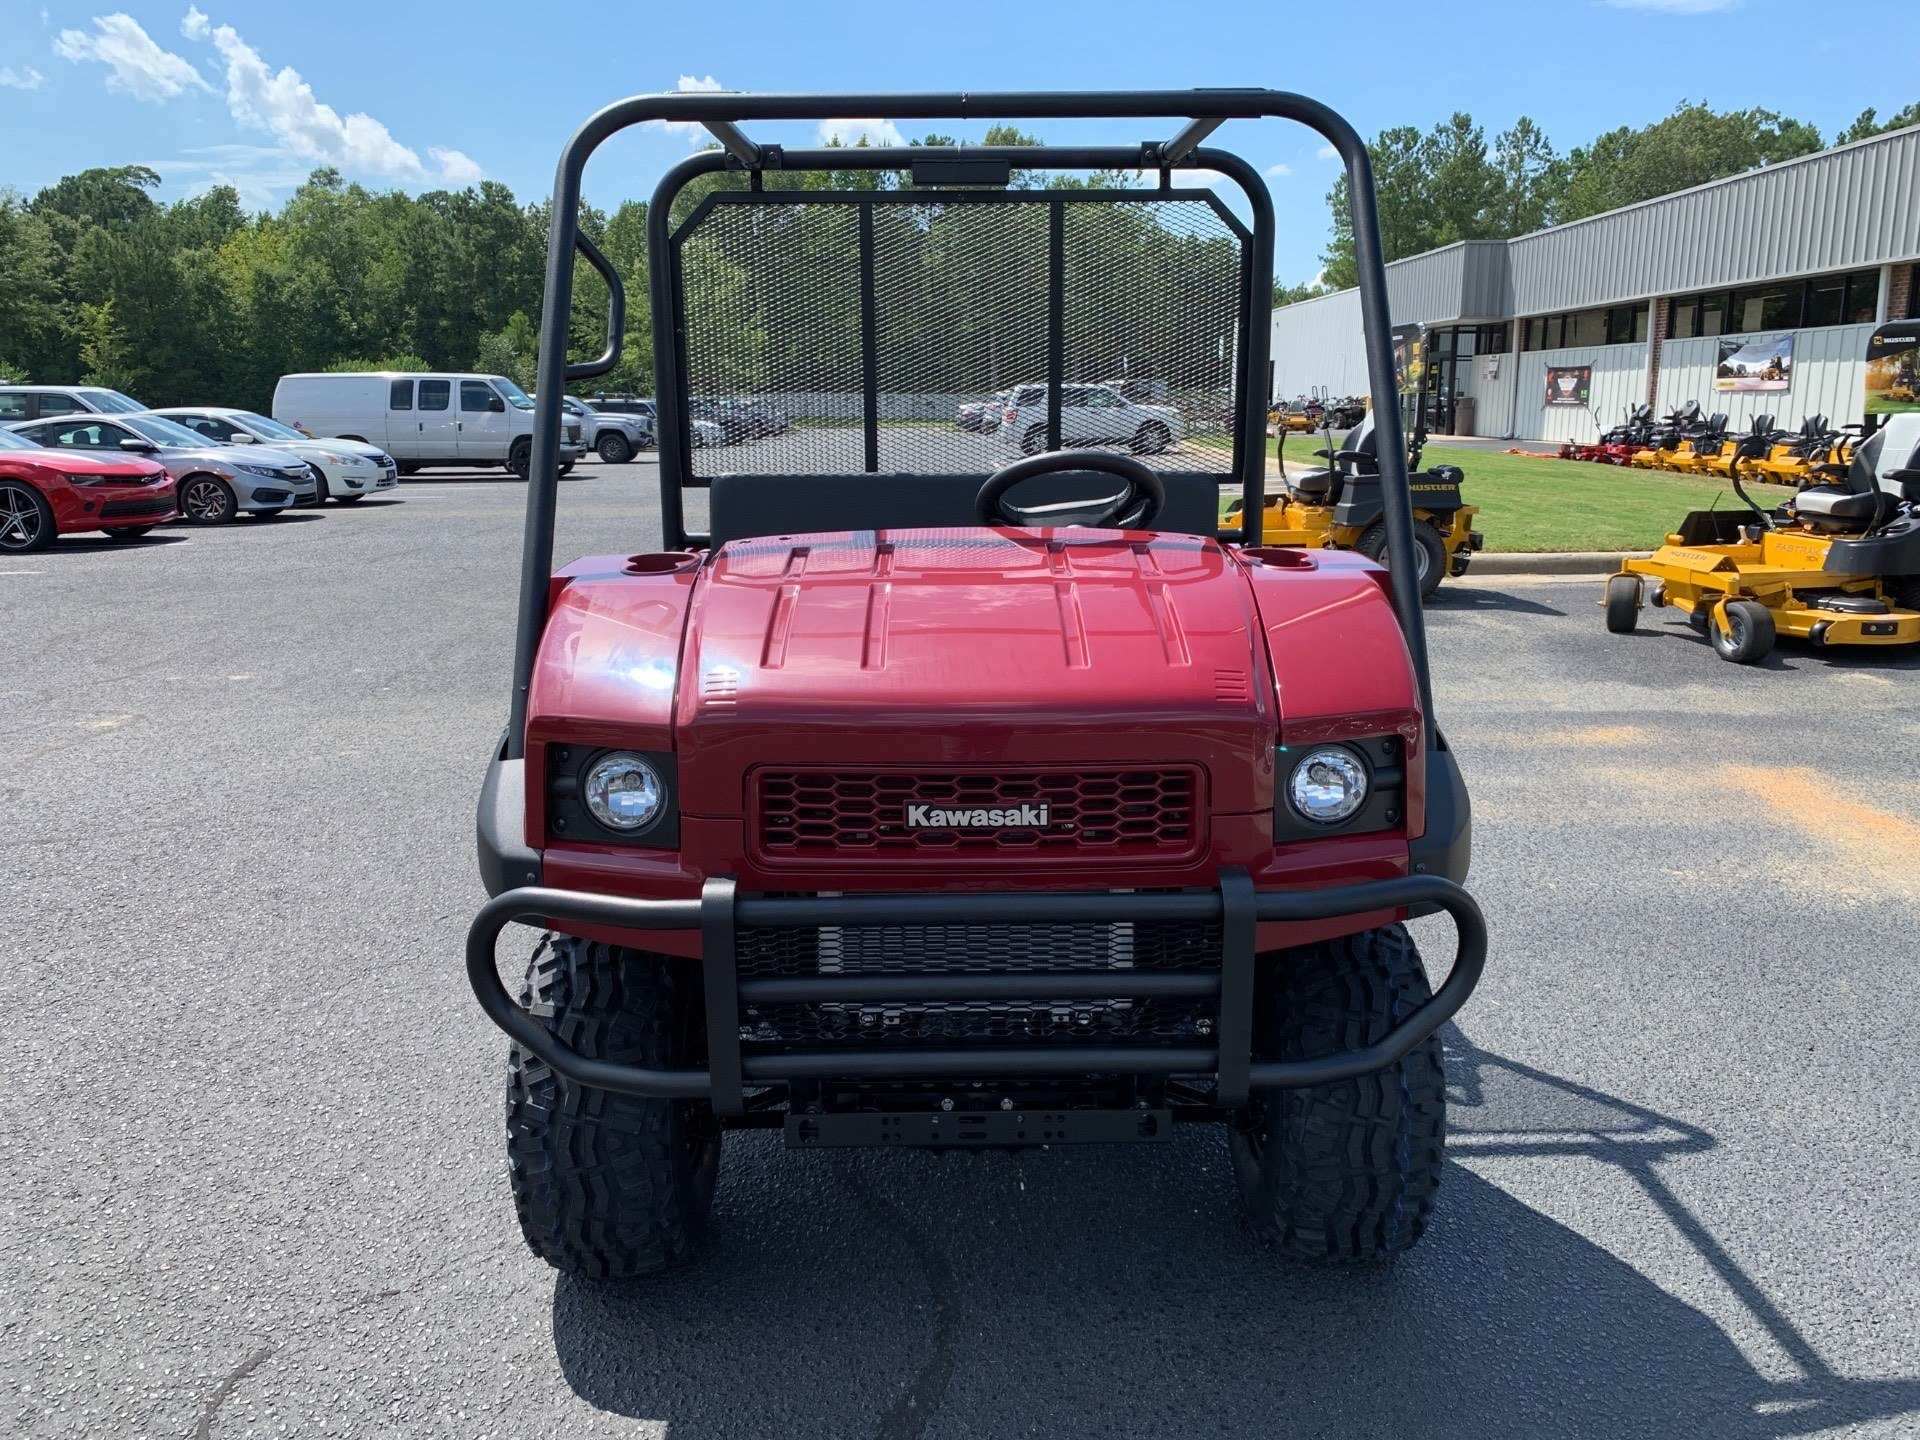 2020 Kawasaki Mule 4010 4x4 in Greenville, North Carolina - Photo 4